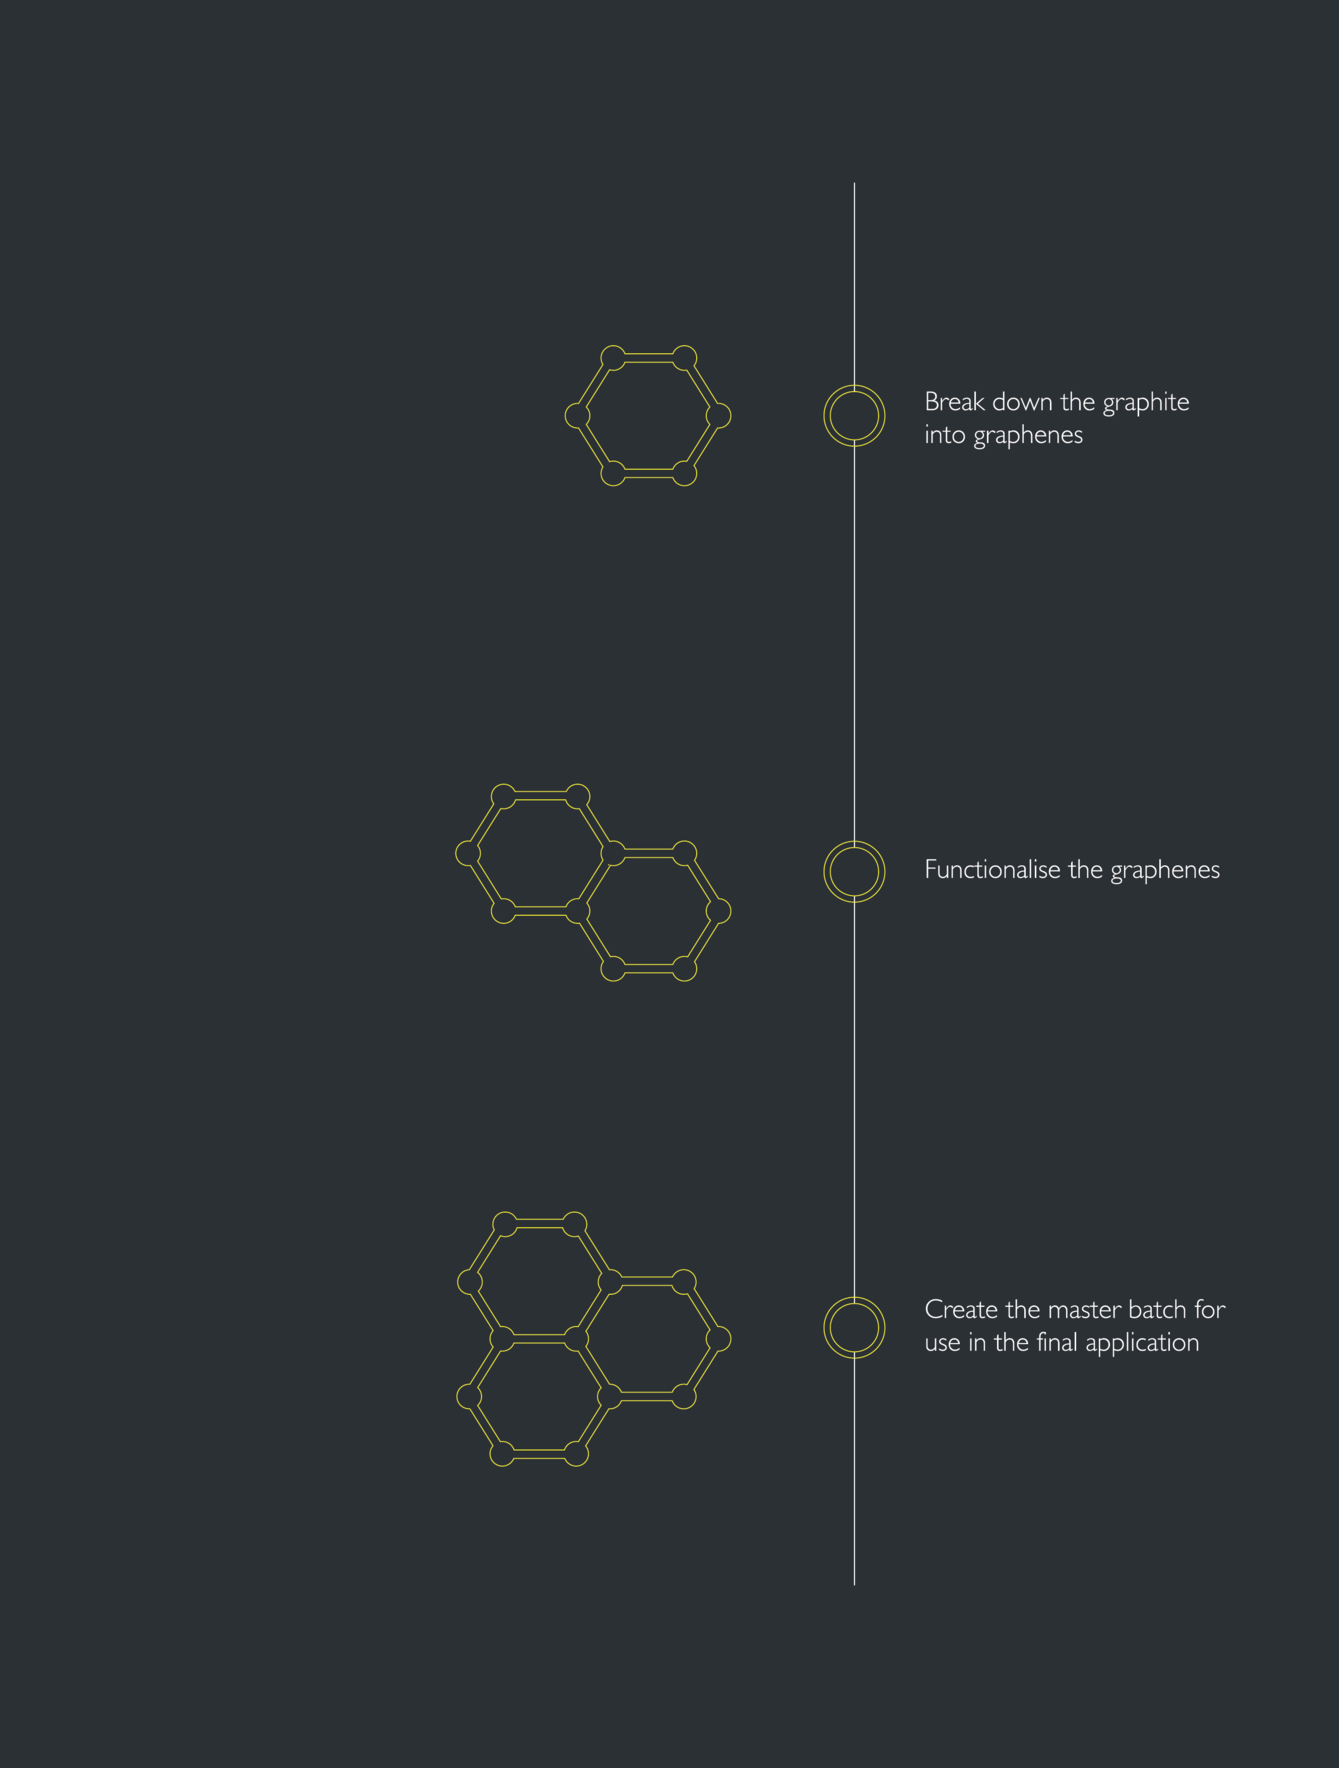 THE GRAPHENE PROCESS - THE BASIC 3 STEPS TO FUNCTIONALISE GRAPHENE